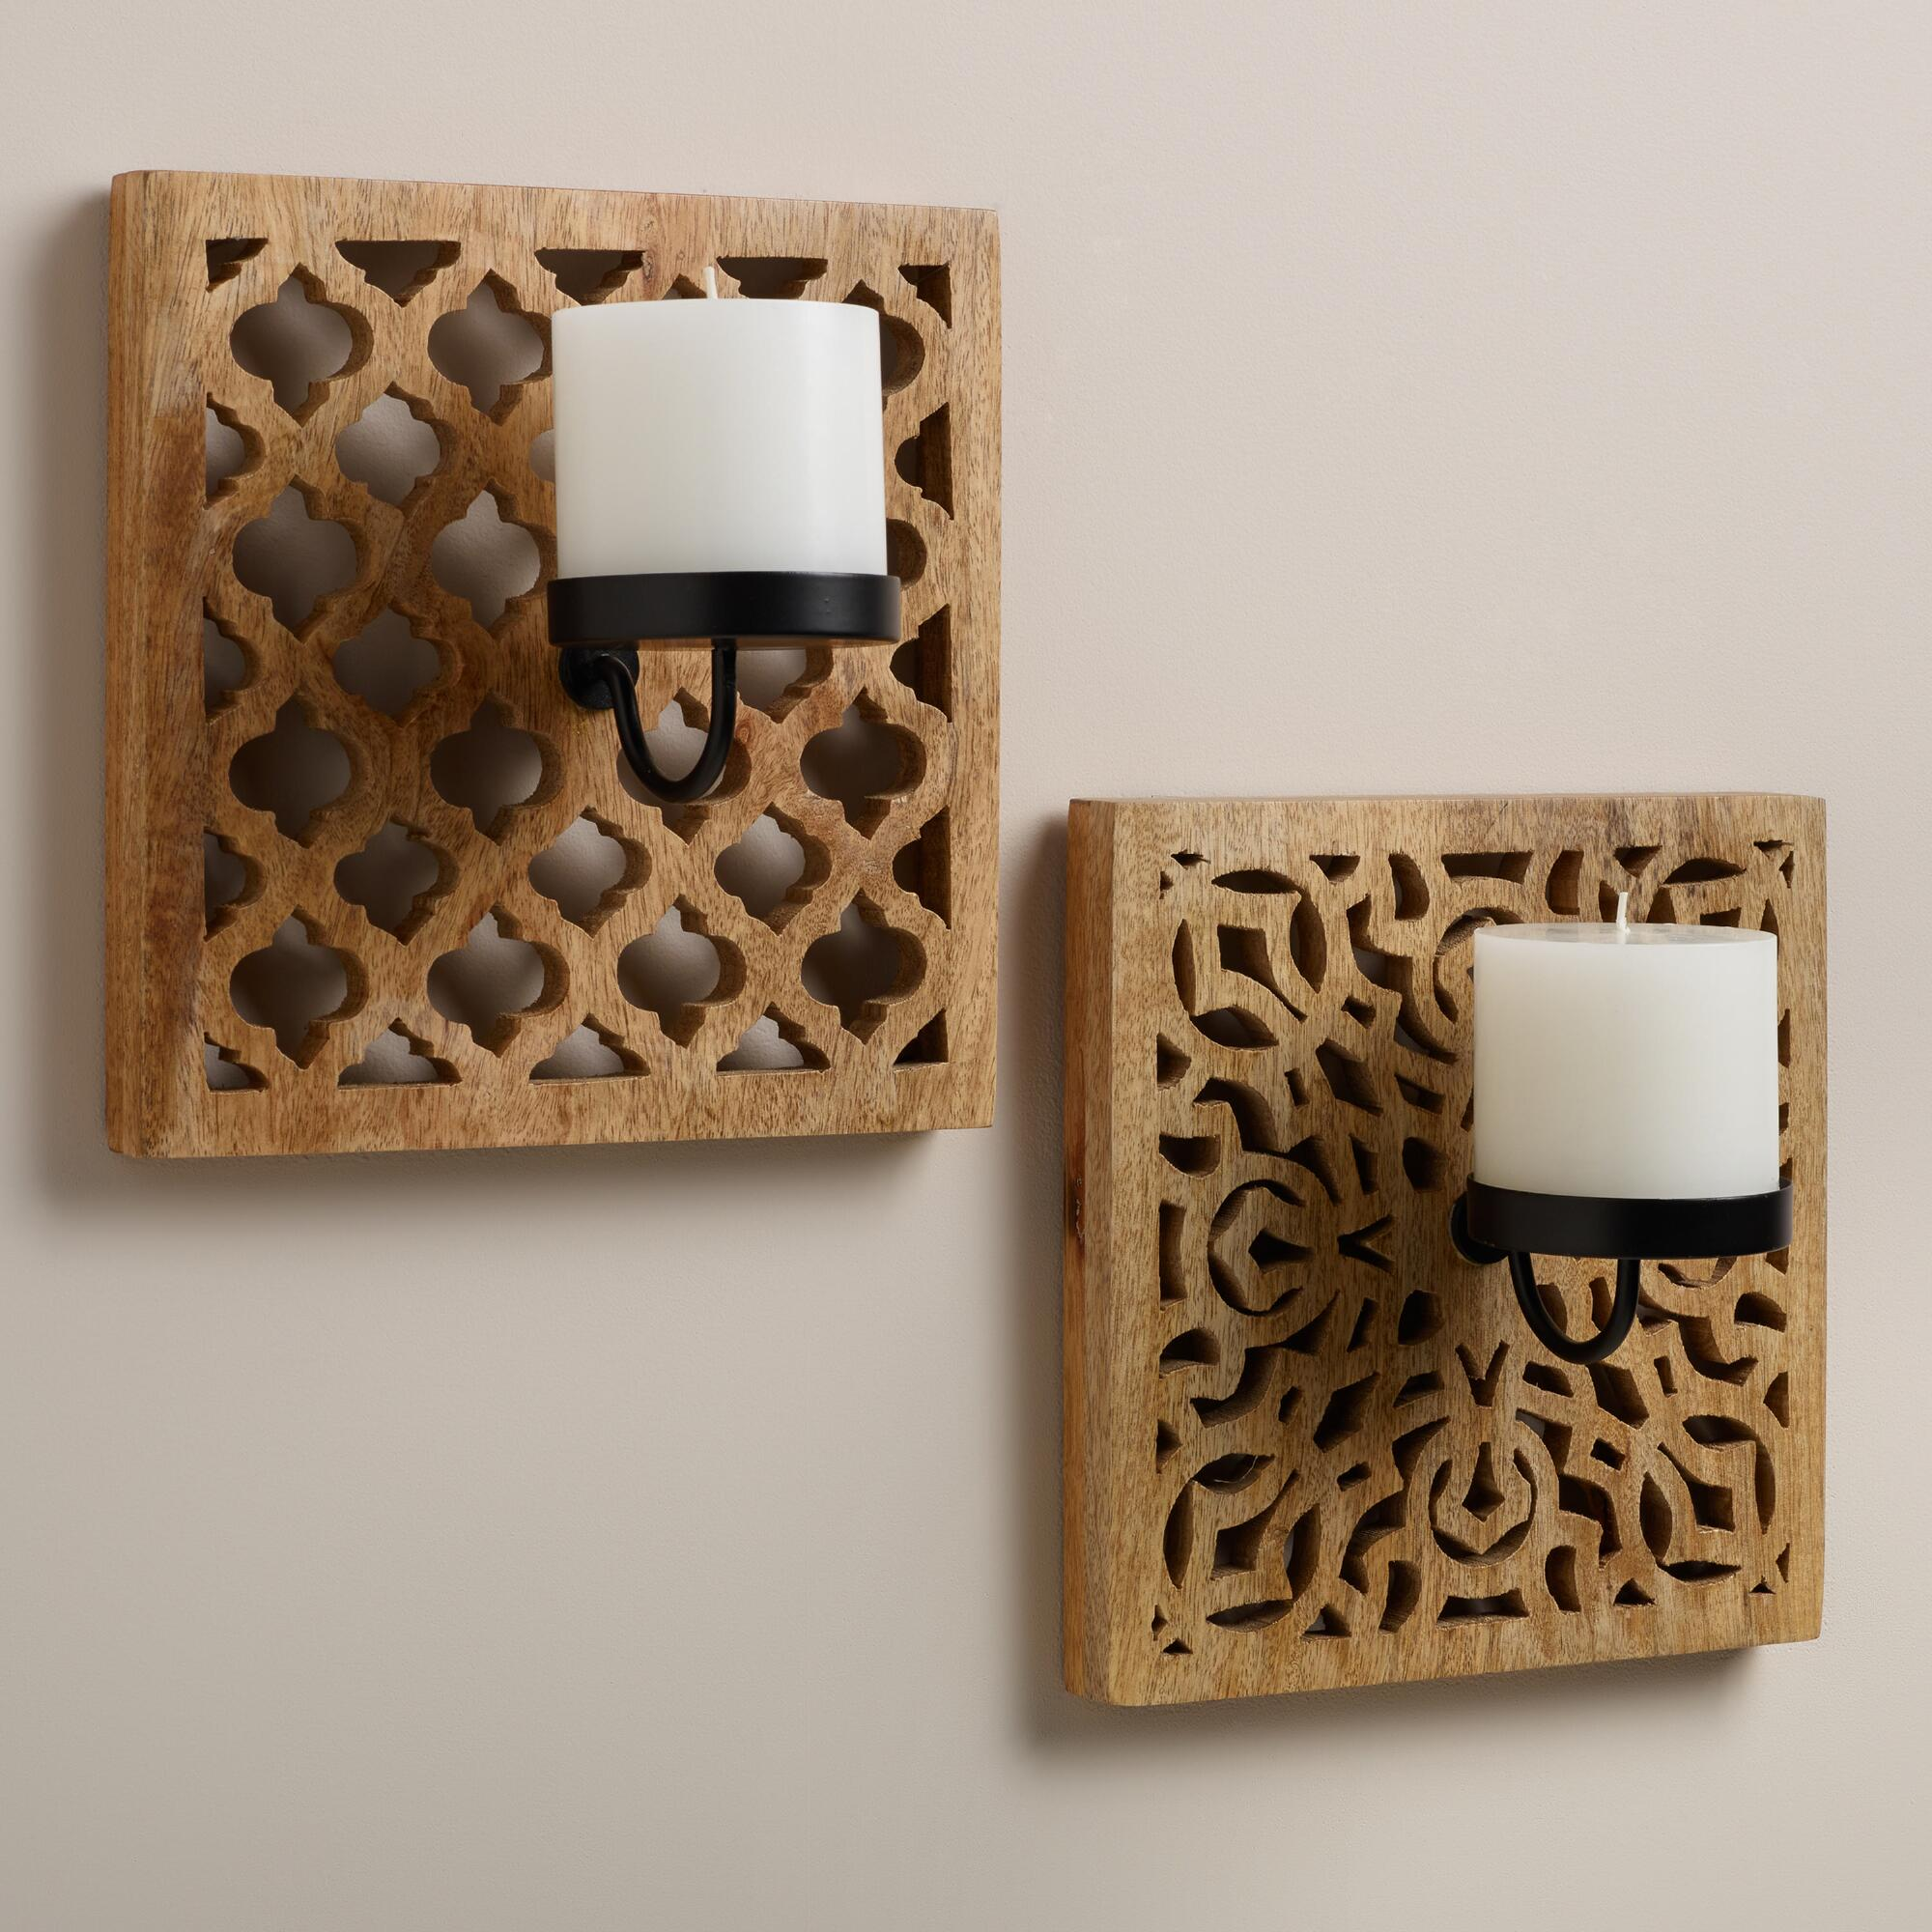 Wall Candle Sconces Wood : Carved Wood Wall Sconce Candleholders, Set of 2 World Market